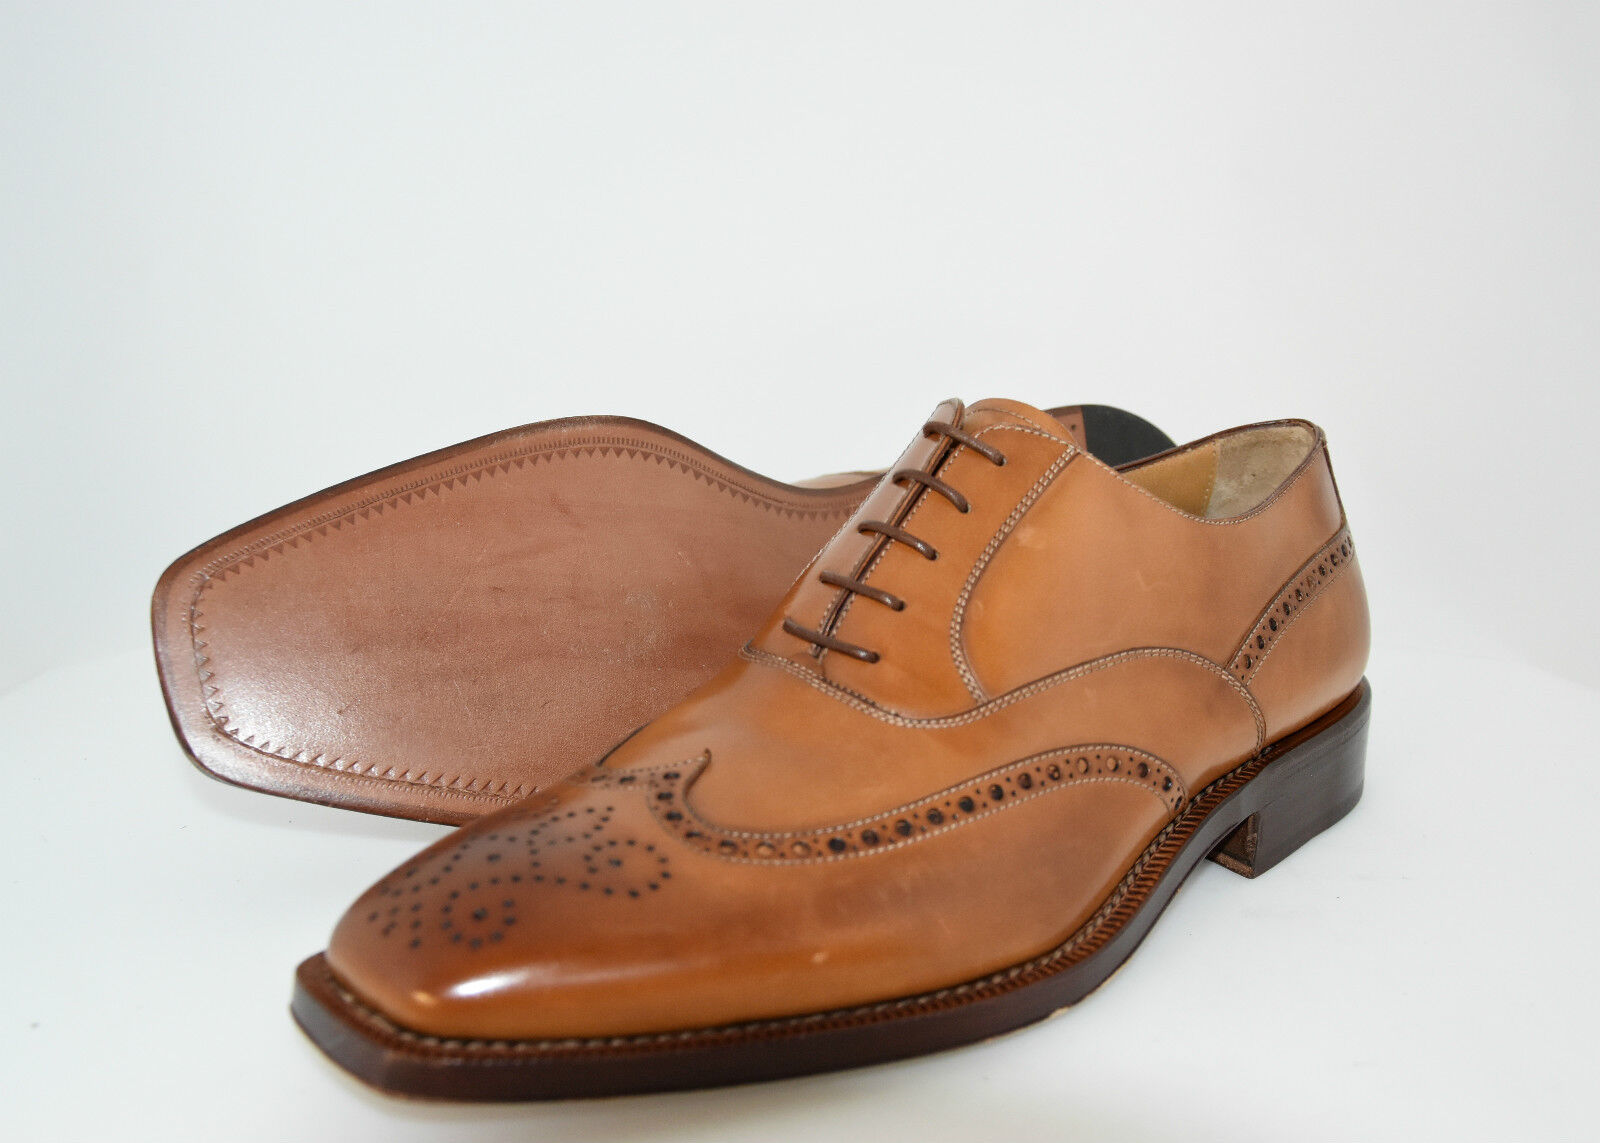 MAN-42eu-8usa-OXFORD WINGTIP W.PERFS&MEDALLION - CALF BOMBAY - LEATHER SOLE Scarpe classiche da uomo